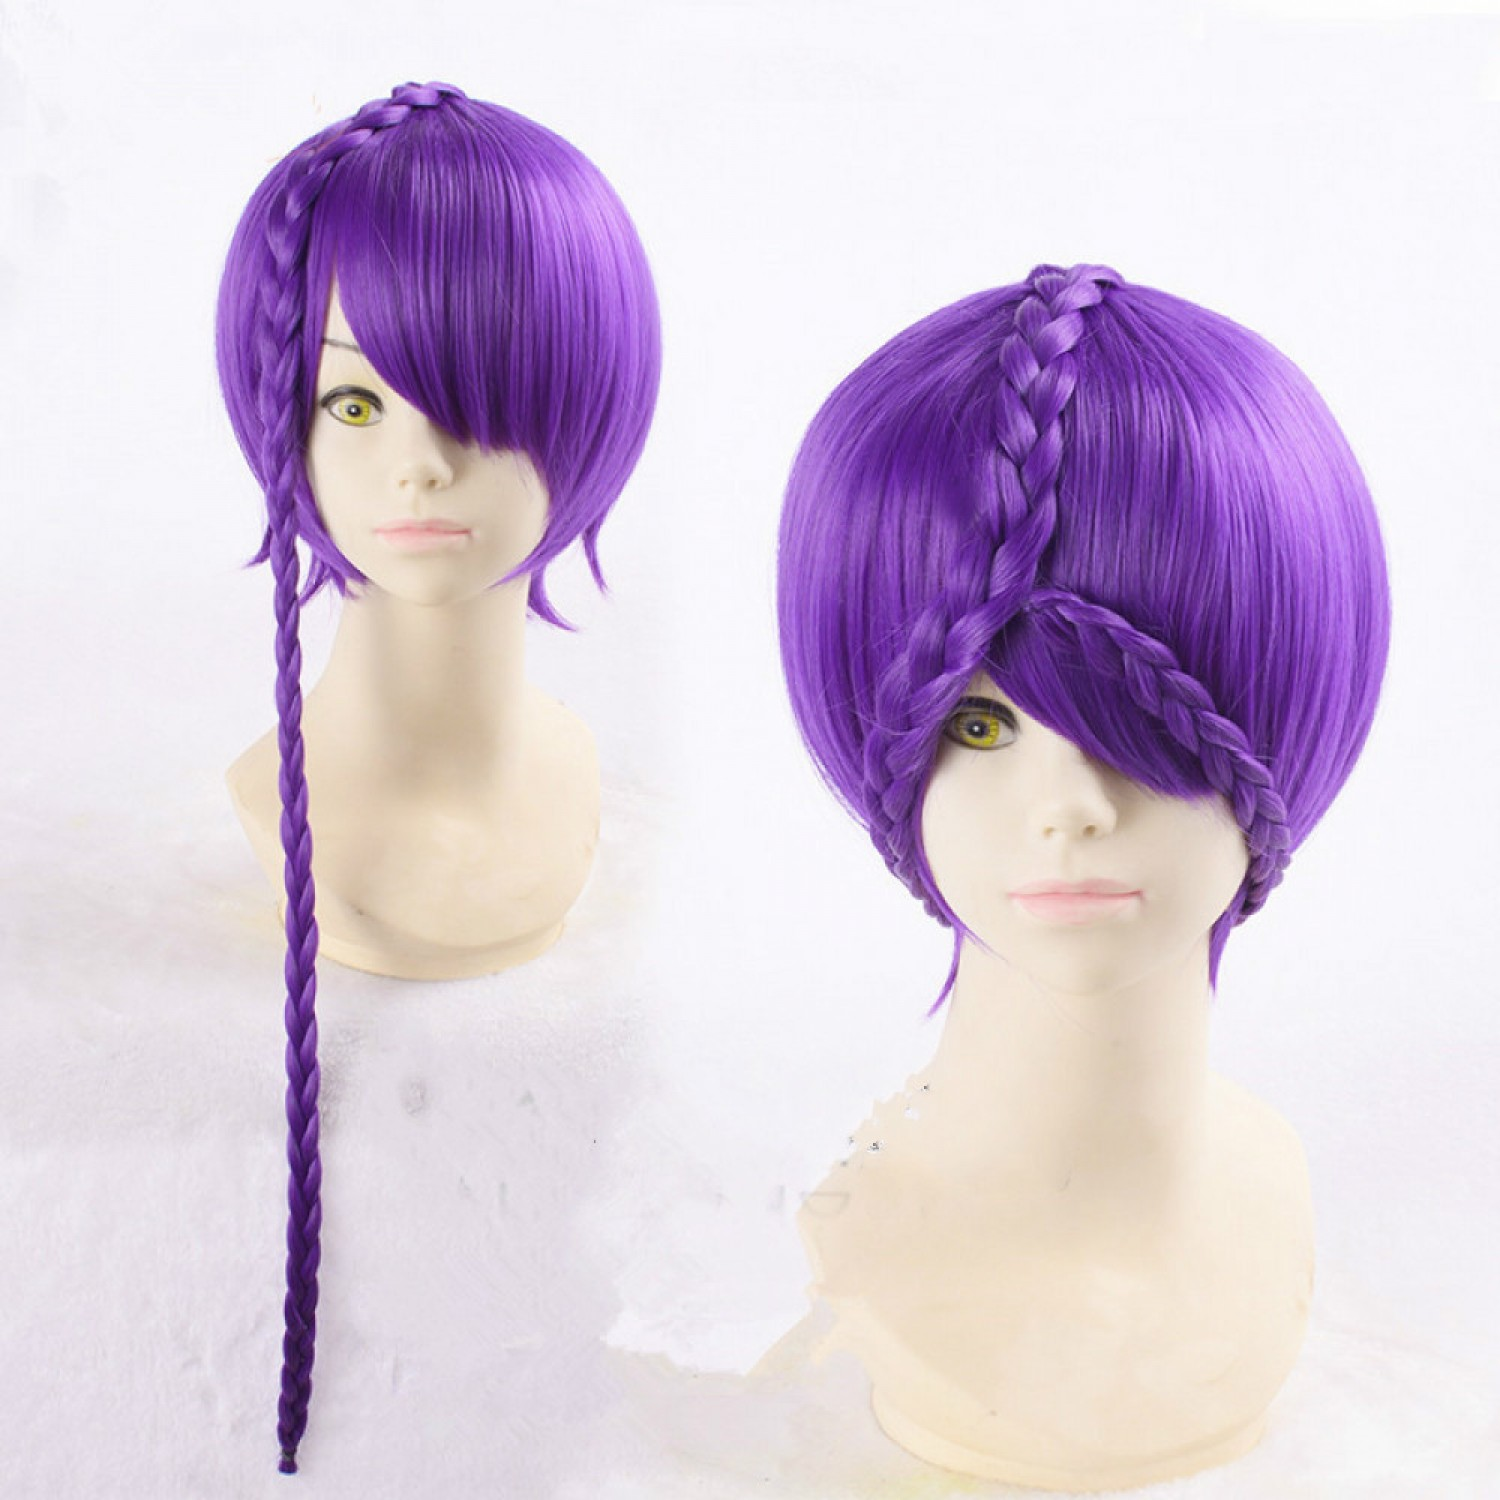 Land of the Lustrous Houseki no Kuni Amethyst Short Purple Styled Japan Anime Cosplay Wig